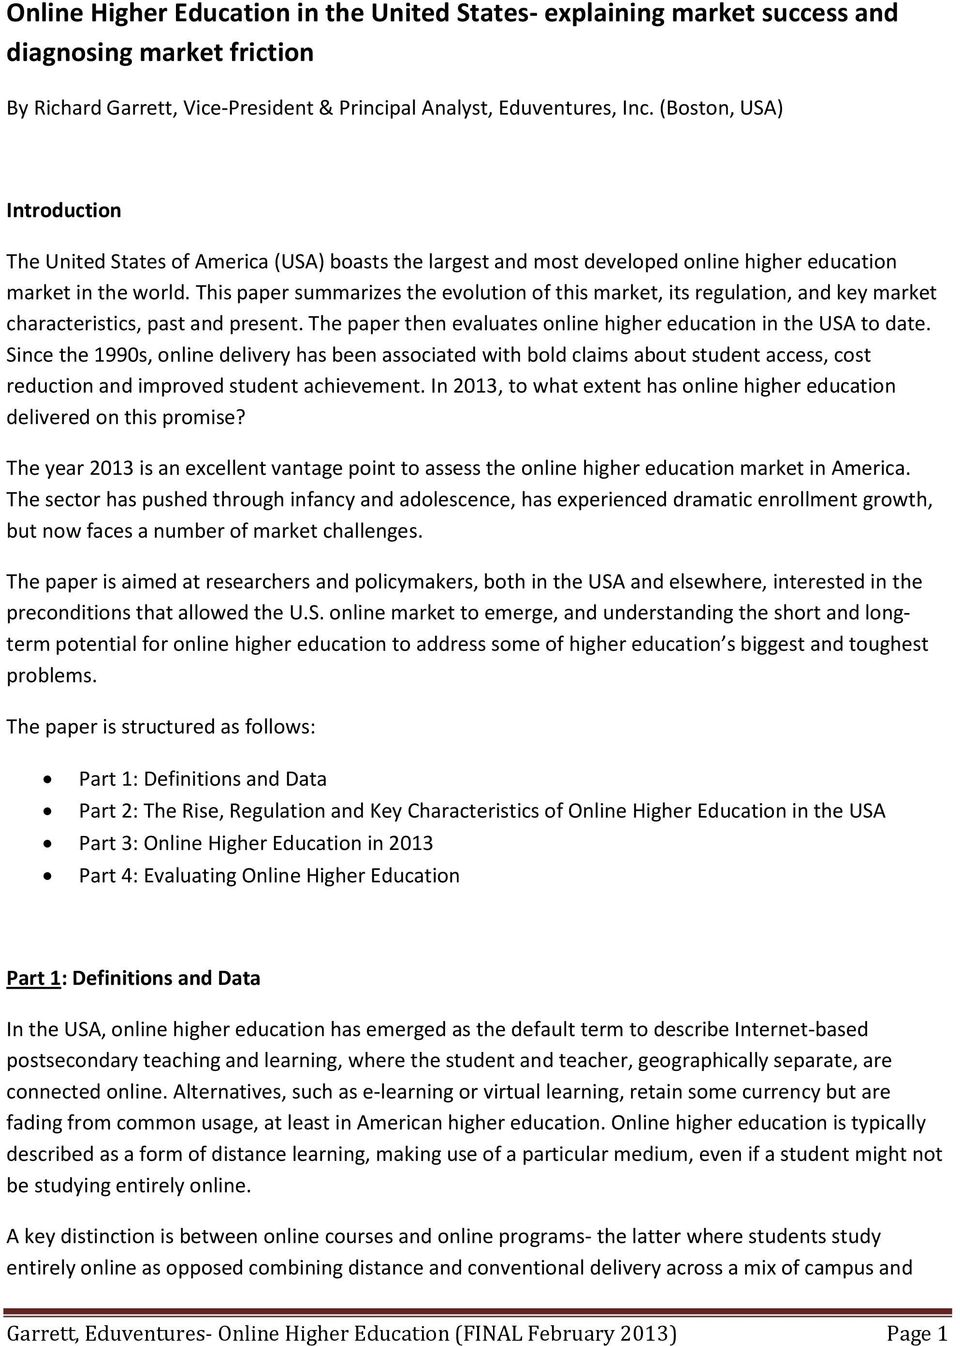 This paper summarizes the evolution of this market, its regulation, and key market characteristics, past and present. The paper then evaluates online higher education in the USA to date.